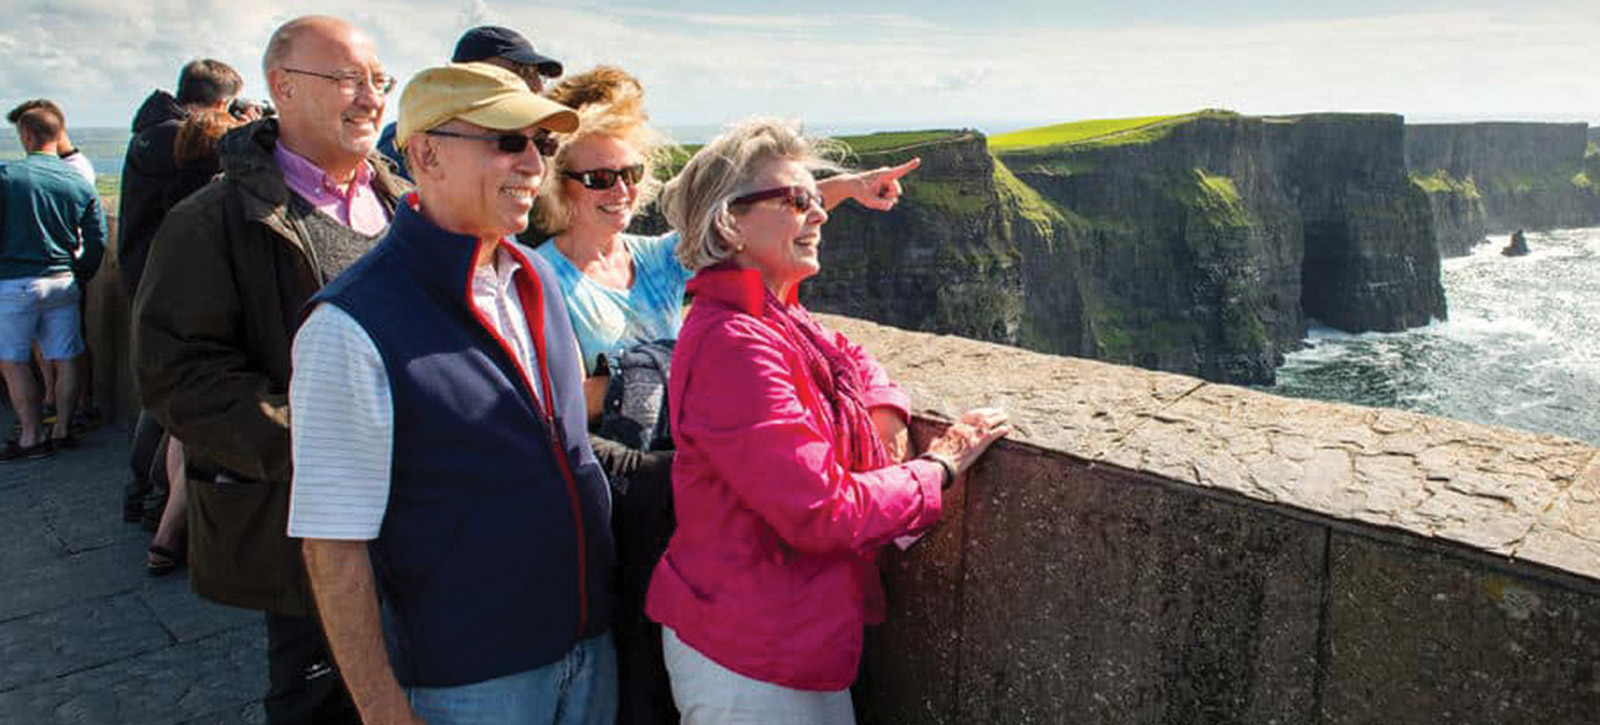 Tourists looking at sea view